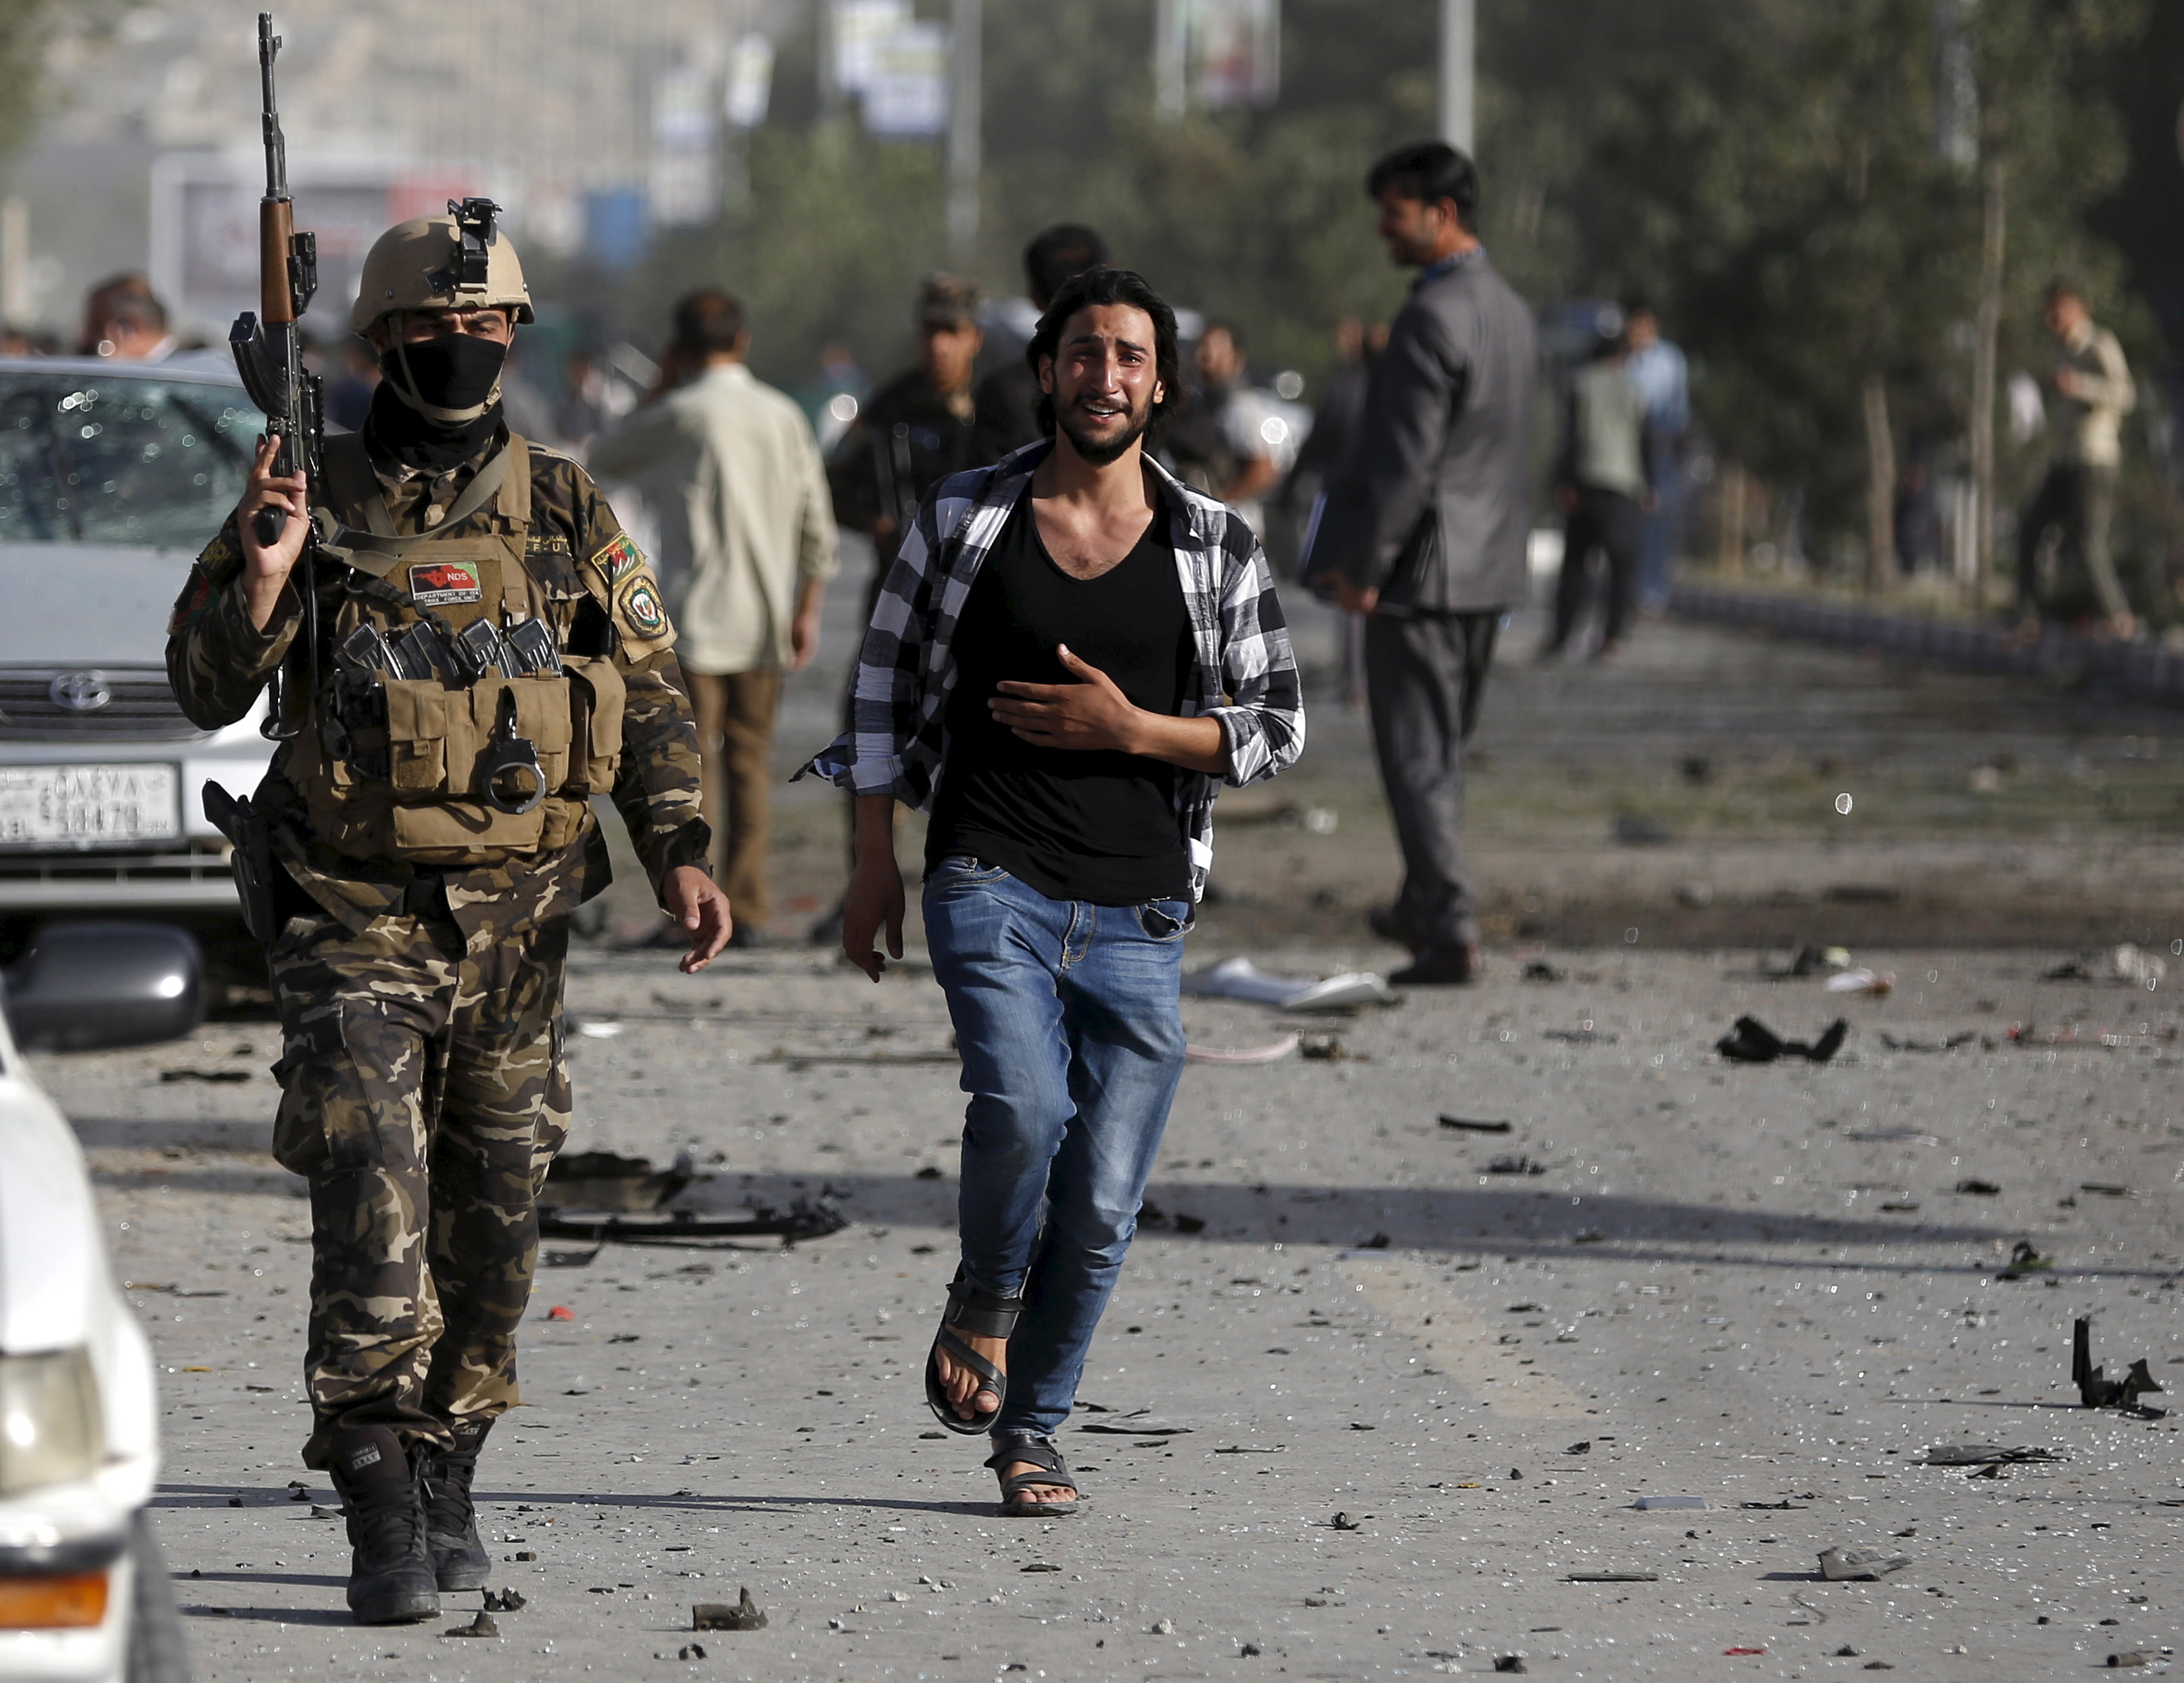 An Afghan man weeps as he runs at the site of a car bomb blast in Kabul, Afghanistan Aug. 22, 2015